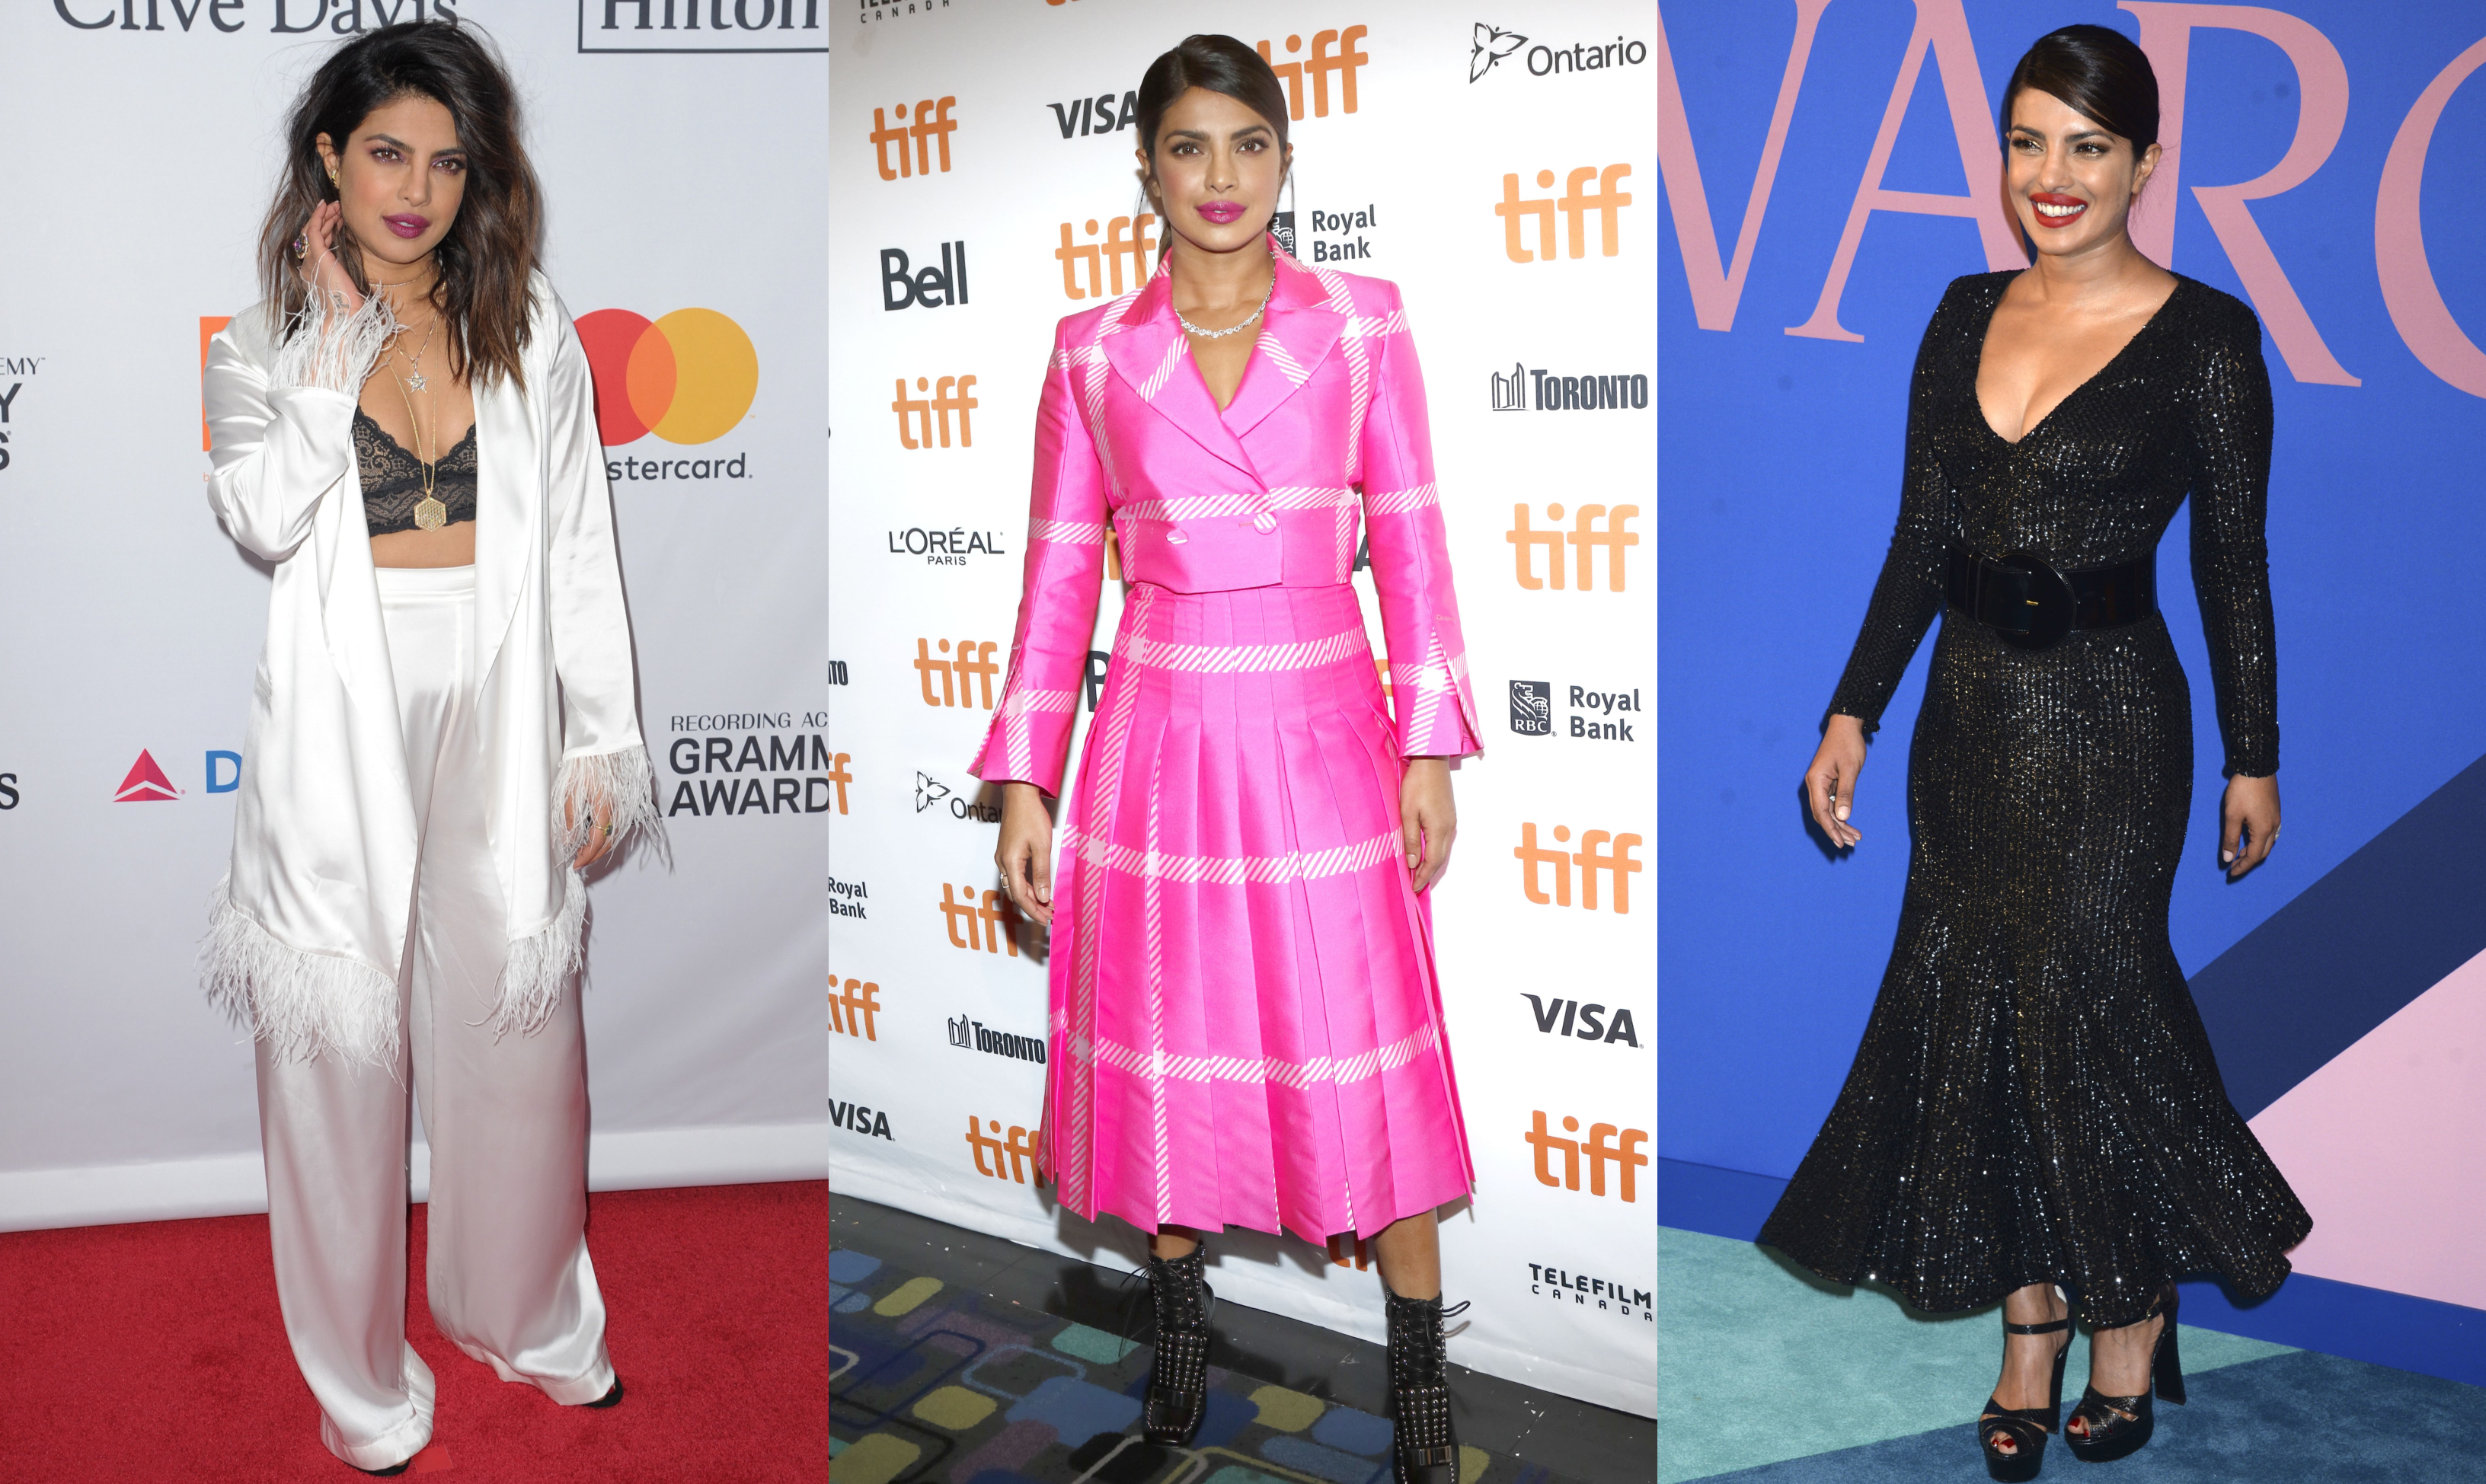 Sure, she's won the Miss World pageant, become a breakout Bollywood star, and earned awards for her role in Quantico, but it's on the red carpet where Priyanka truly shines. (Photo: WENN)